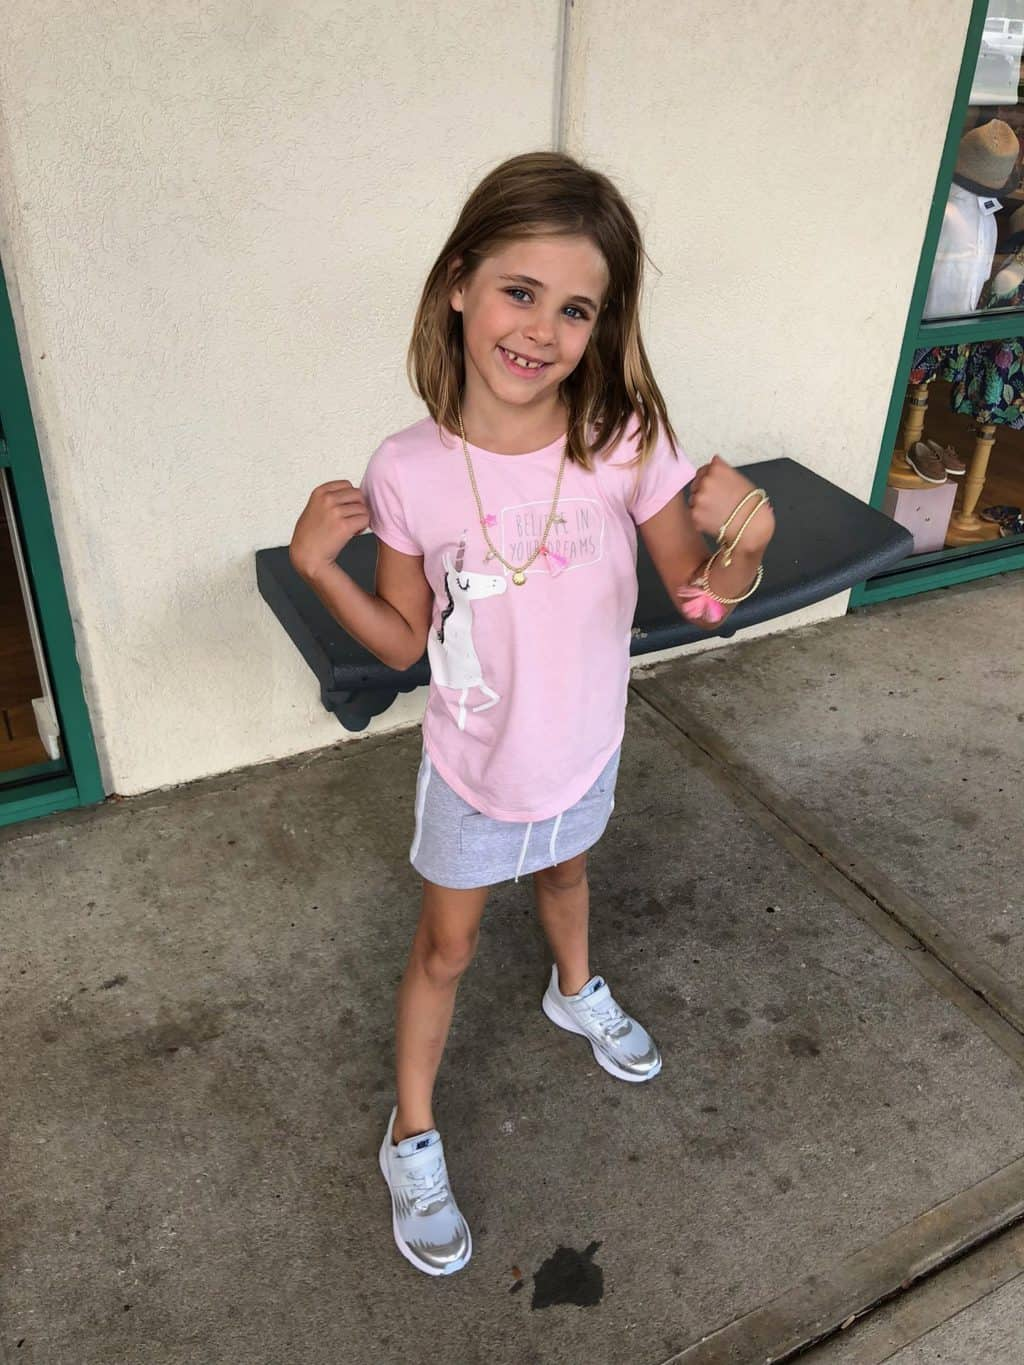 Family Travel to St Augustine, Florida